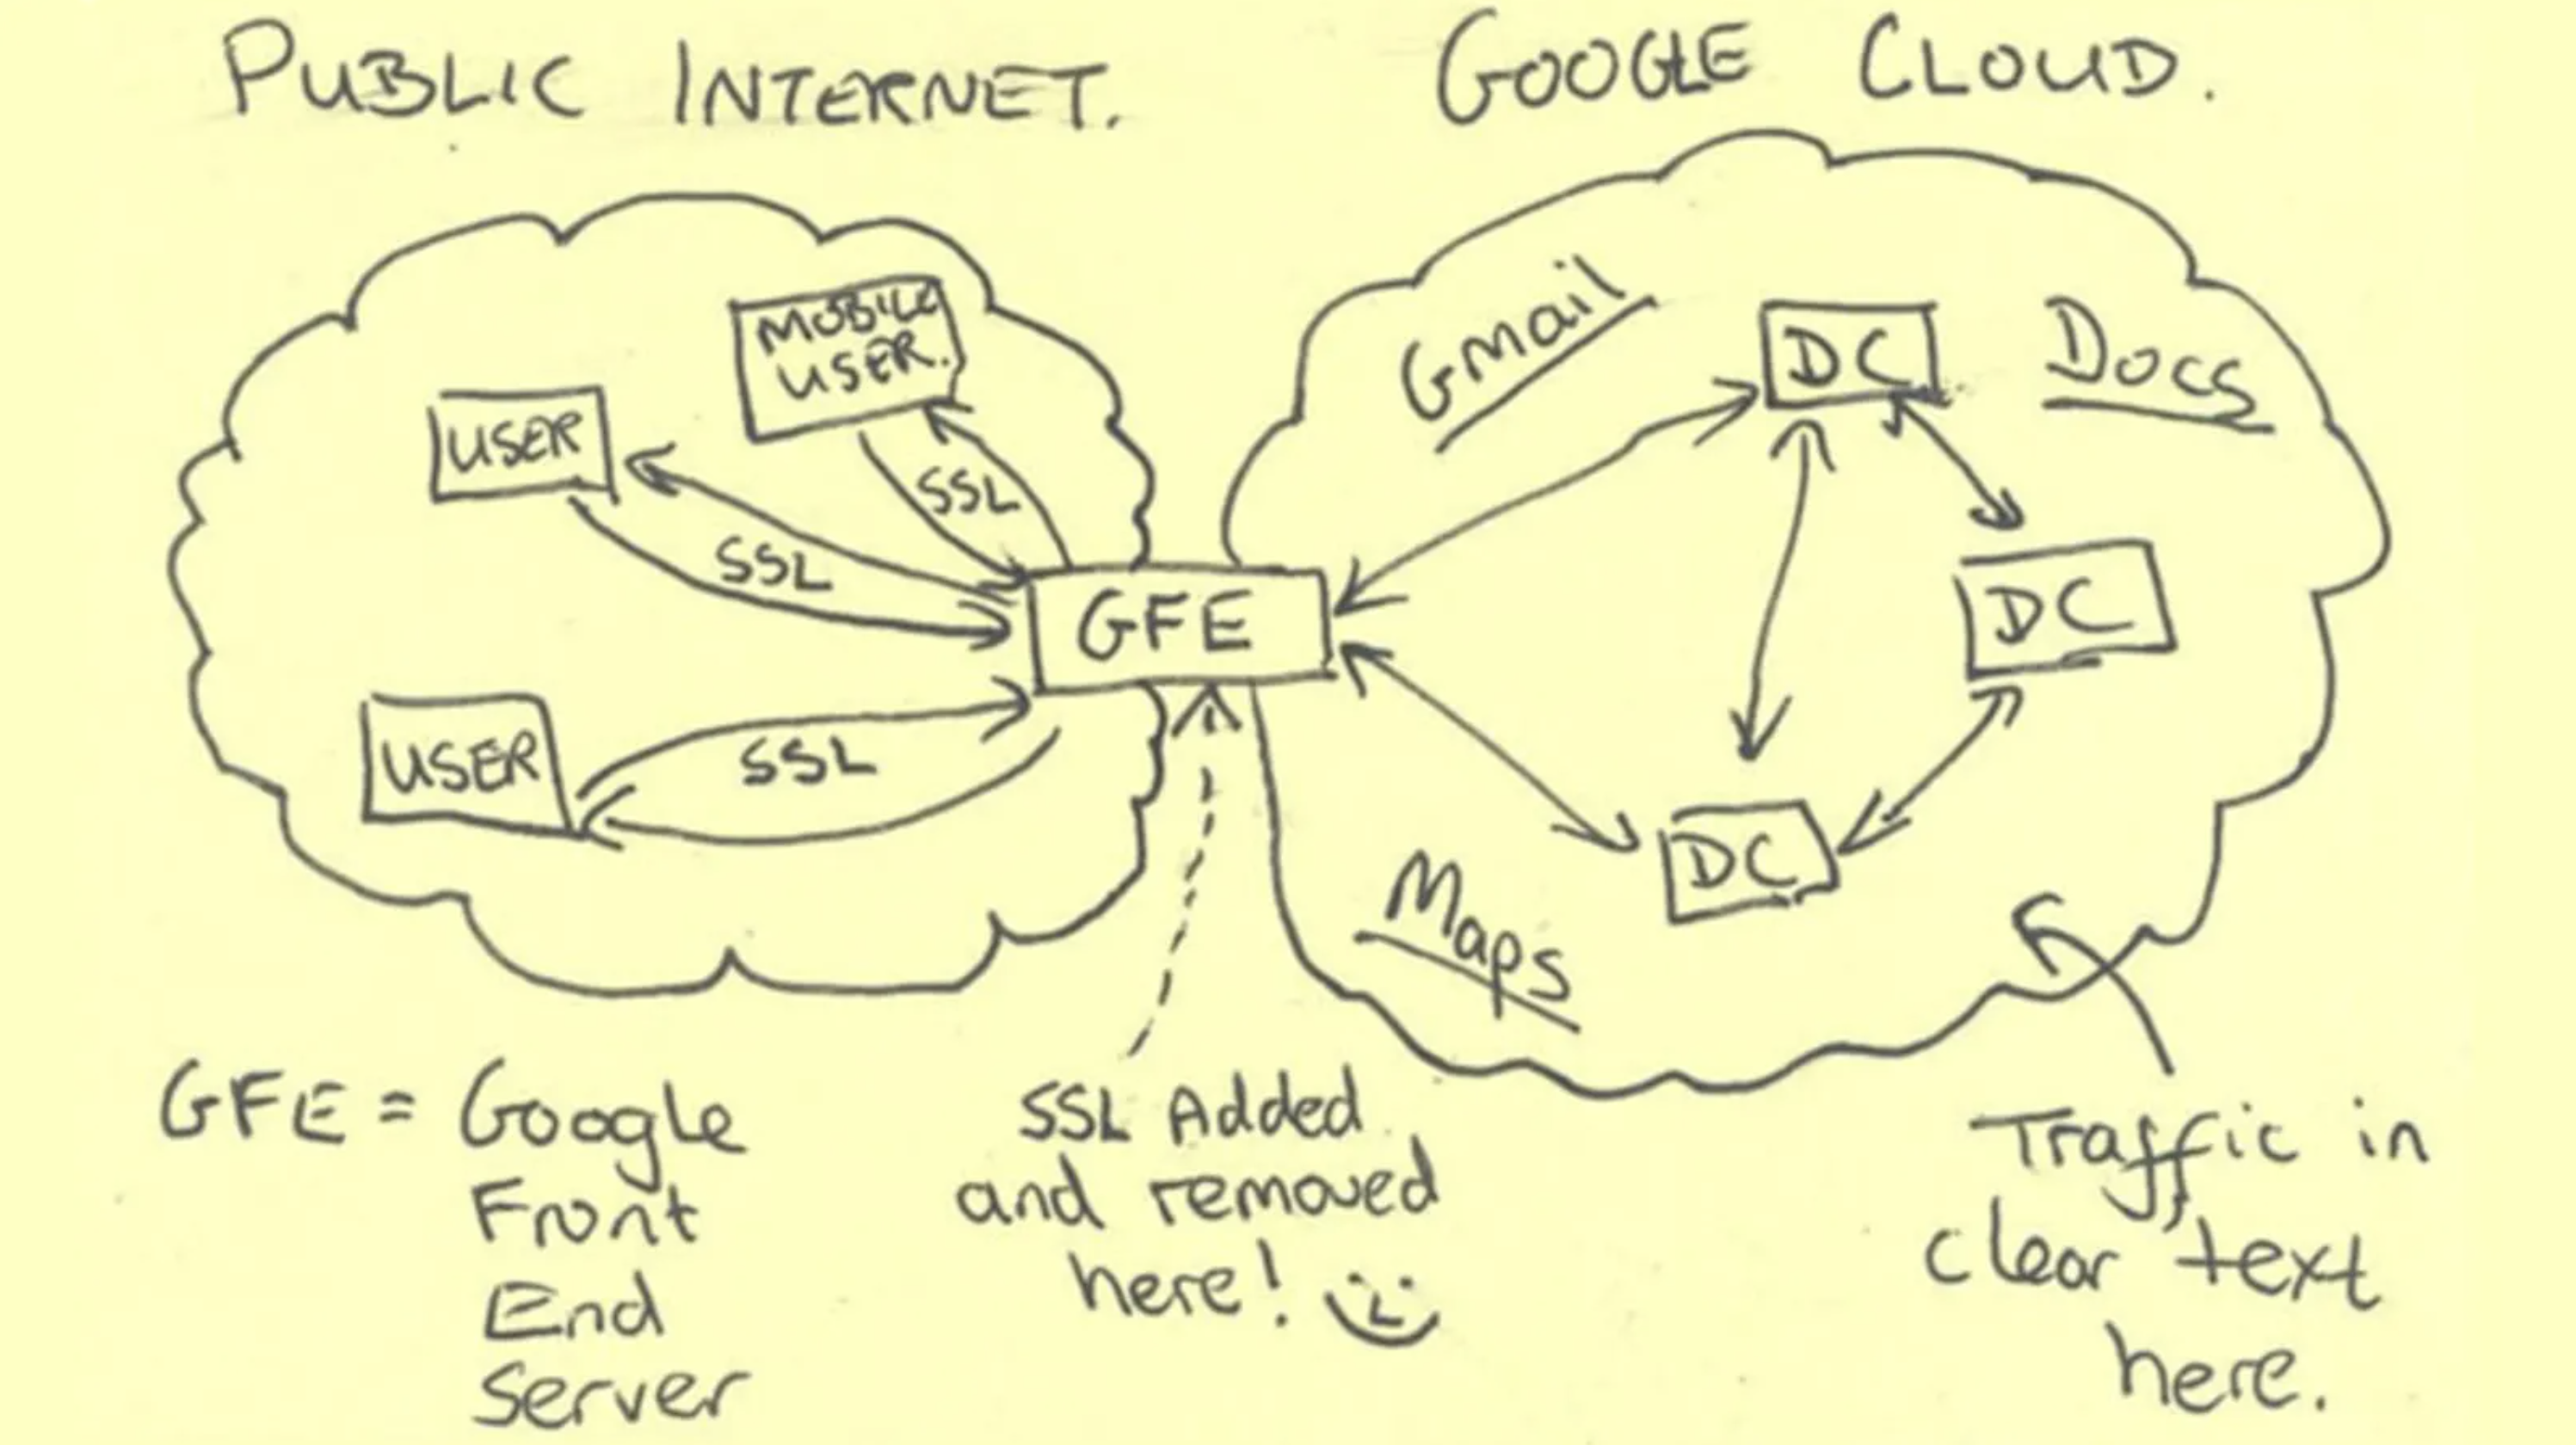 A diagram obtained by the Washington Post that shows (with a smiley face) that traffic inside Google's cloud did not use encryption on requests, as they saw the network perimeter as secure.